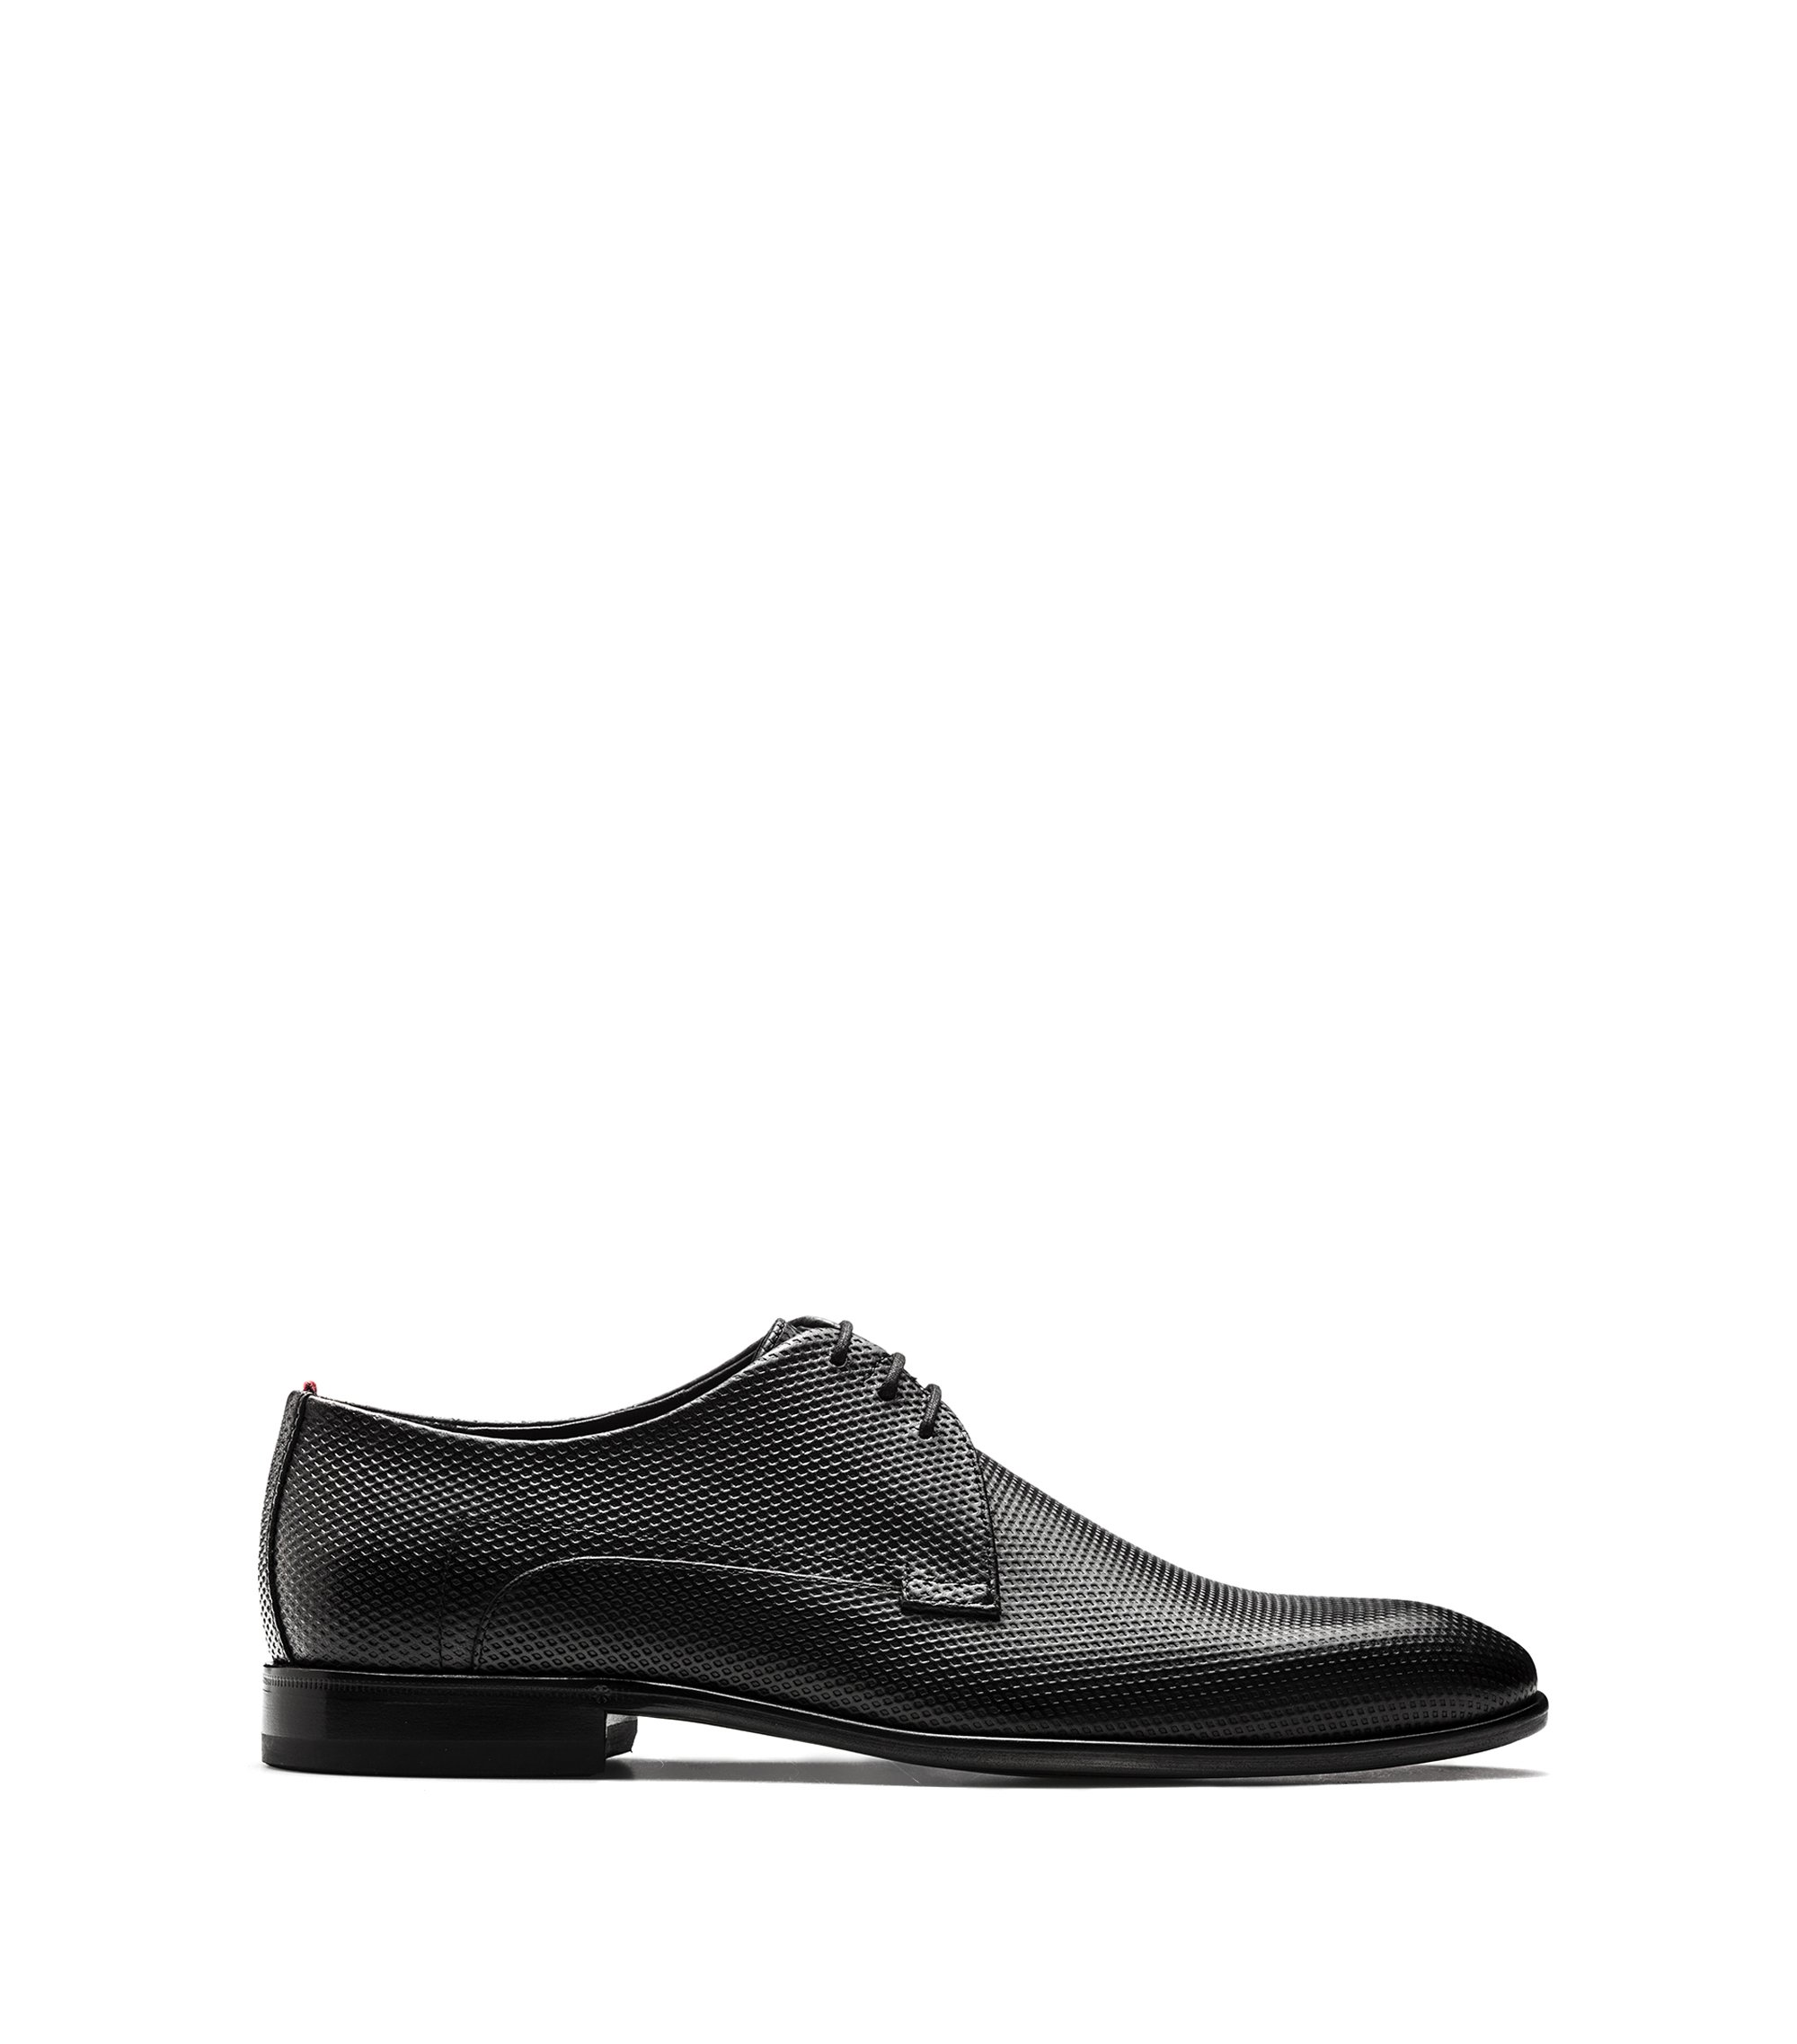 Scarpe derby stringate in pelle di vitello stampata, Nero